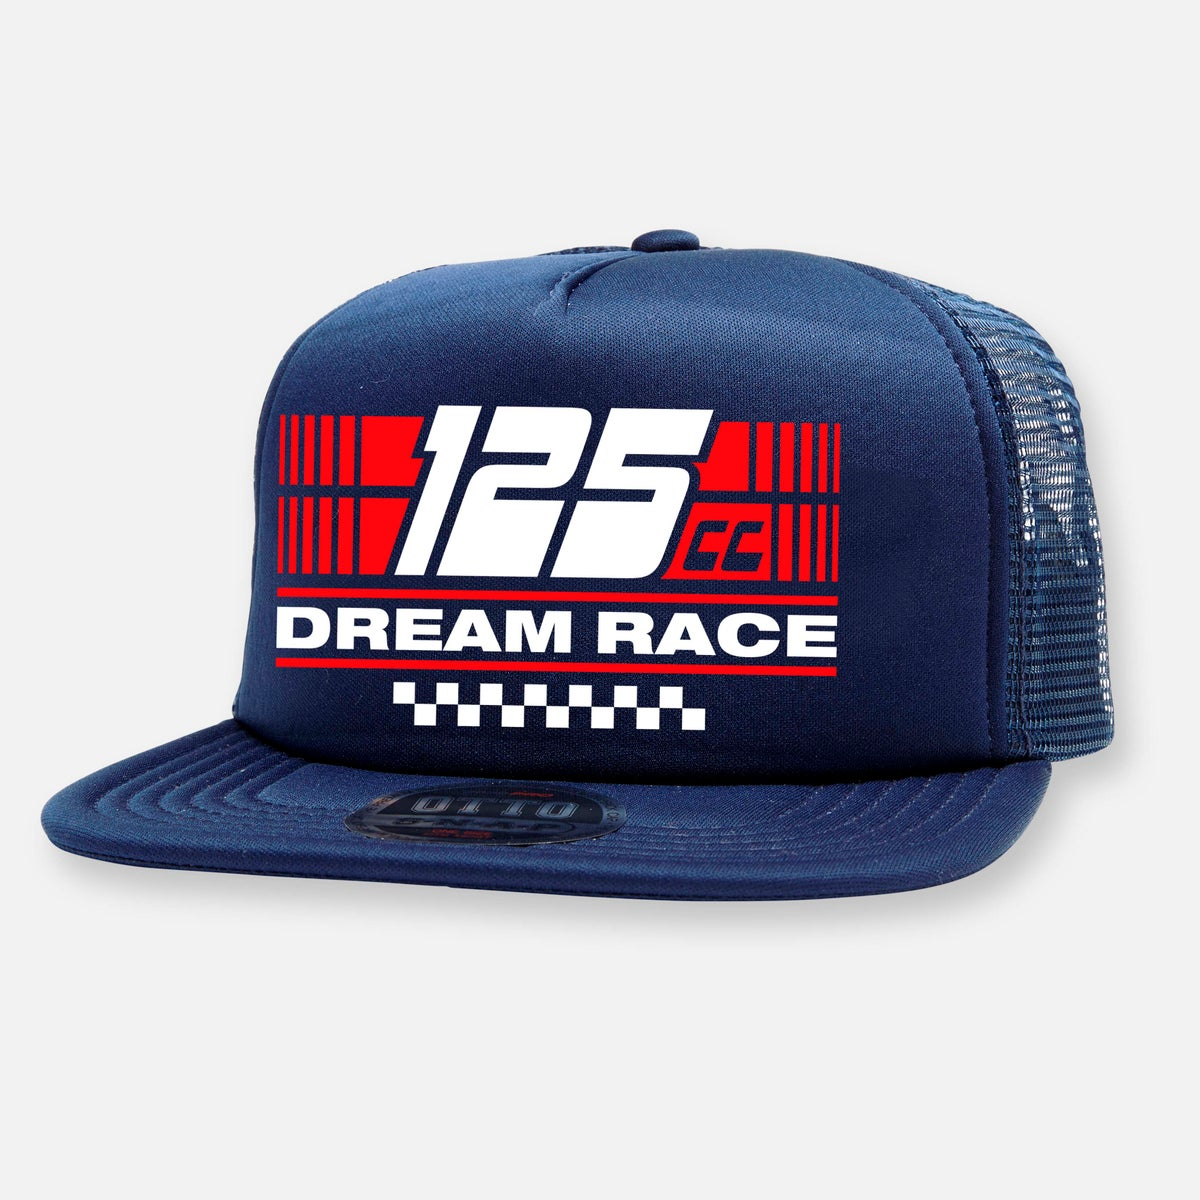 Image of 125 DREAM RACE HAT COLLECTION 2